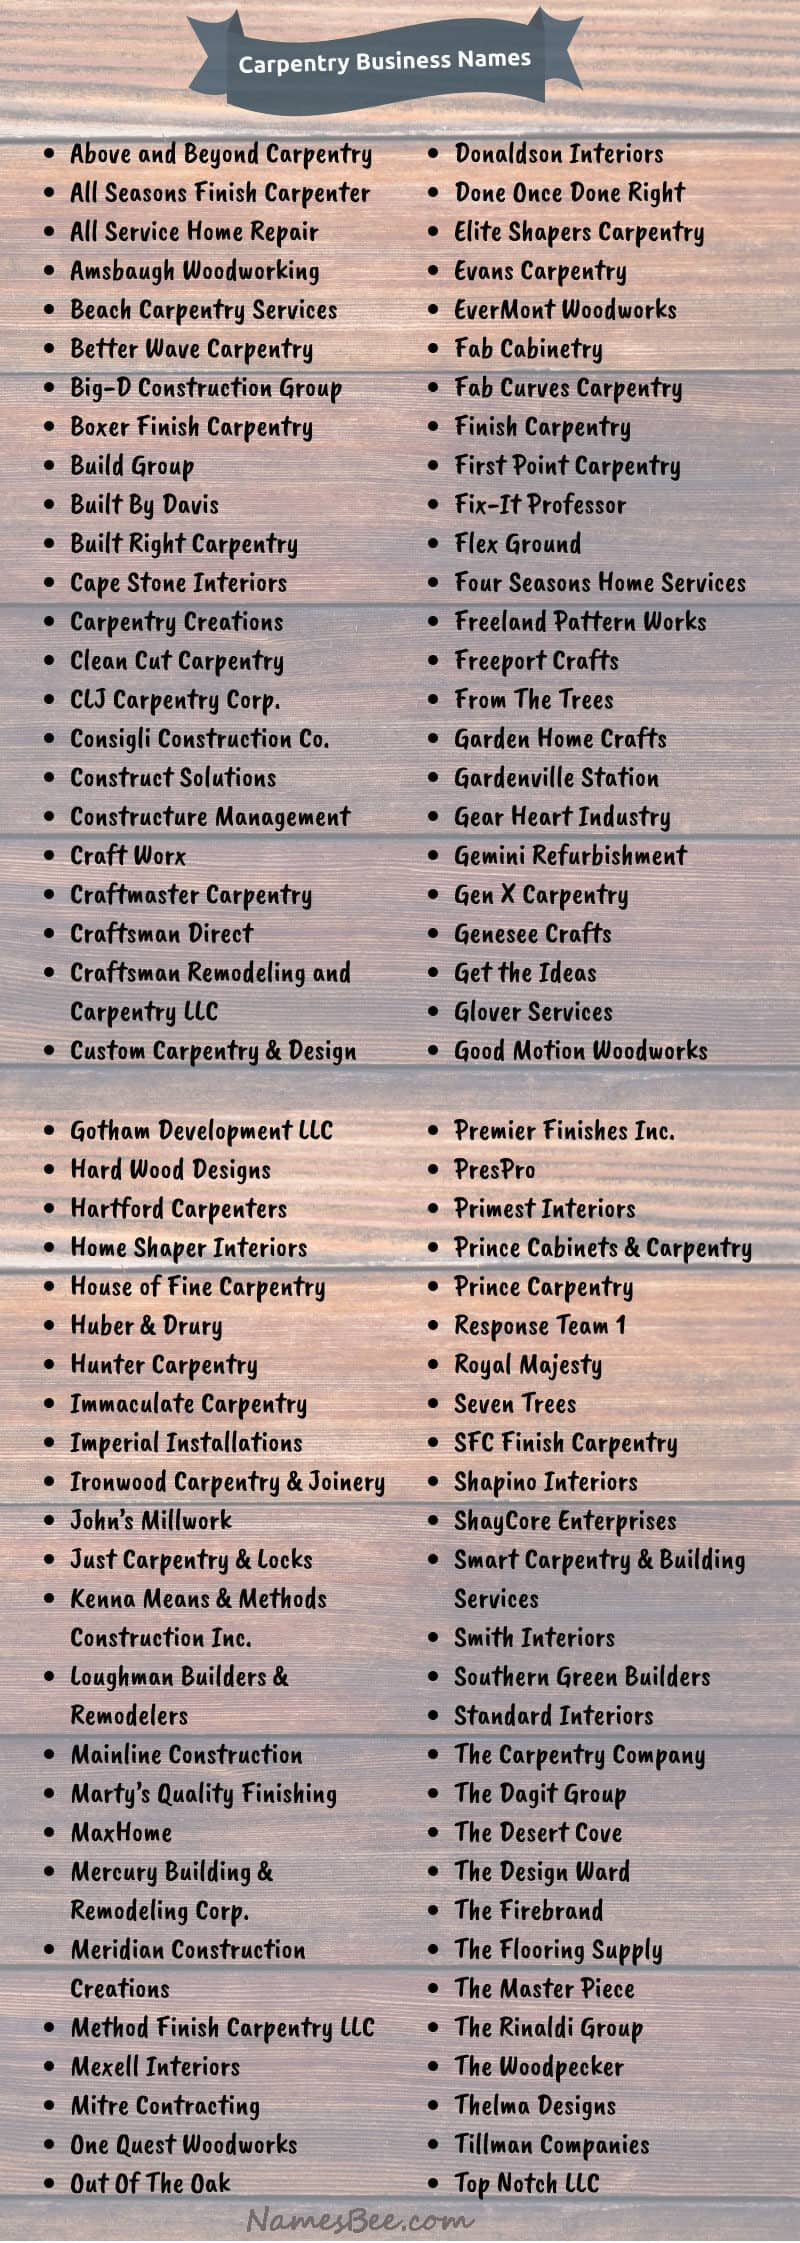 Woodwork Names 600 Catchy Names For Woodworking Business